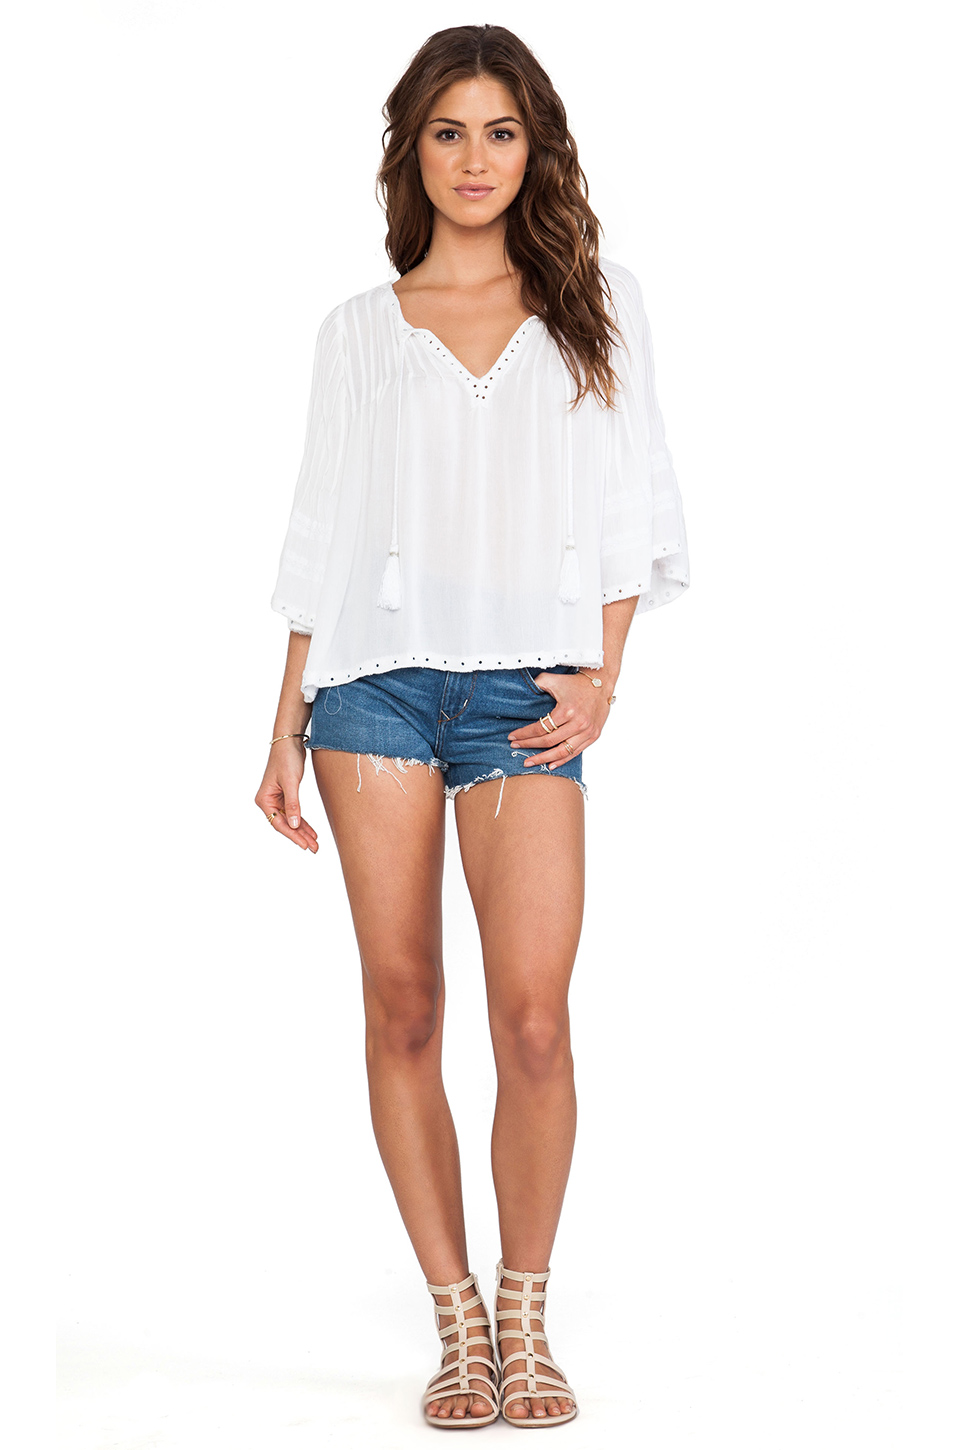 Tularosa Huxley Top in White from REVOLVEclothing.com